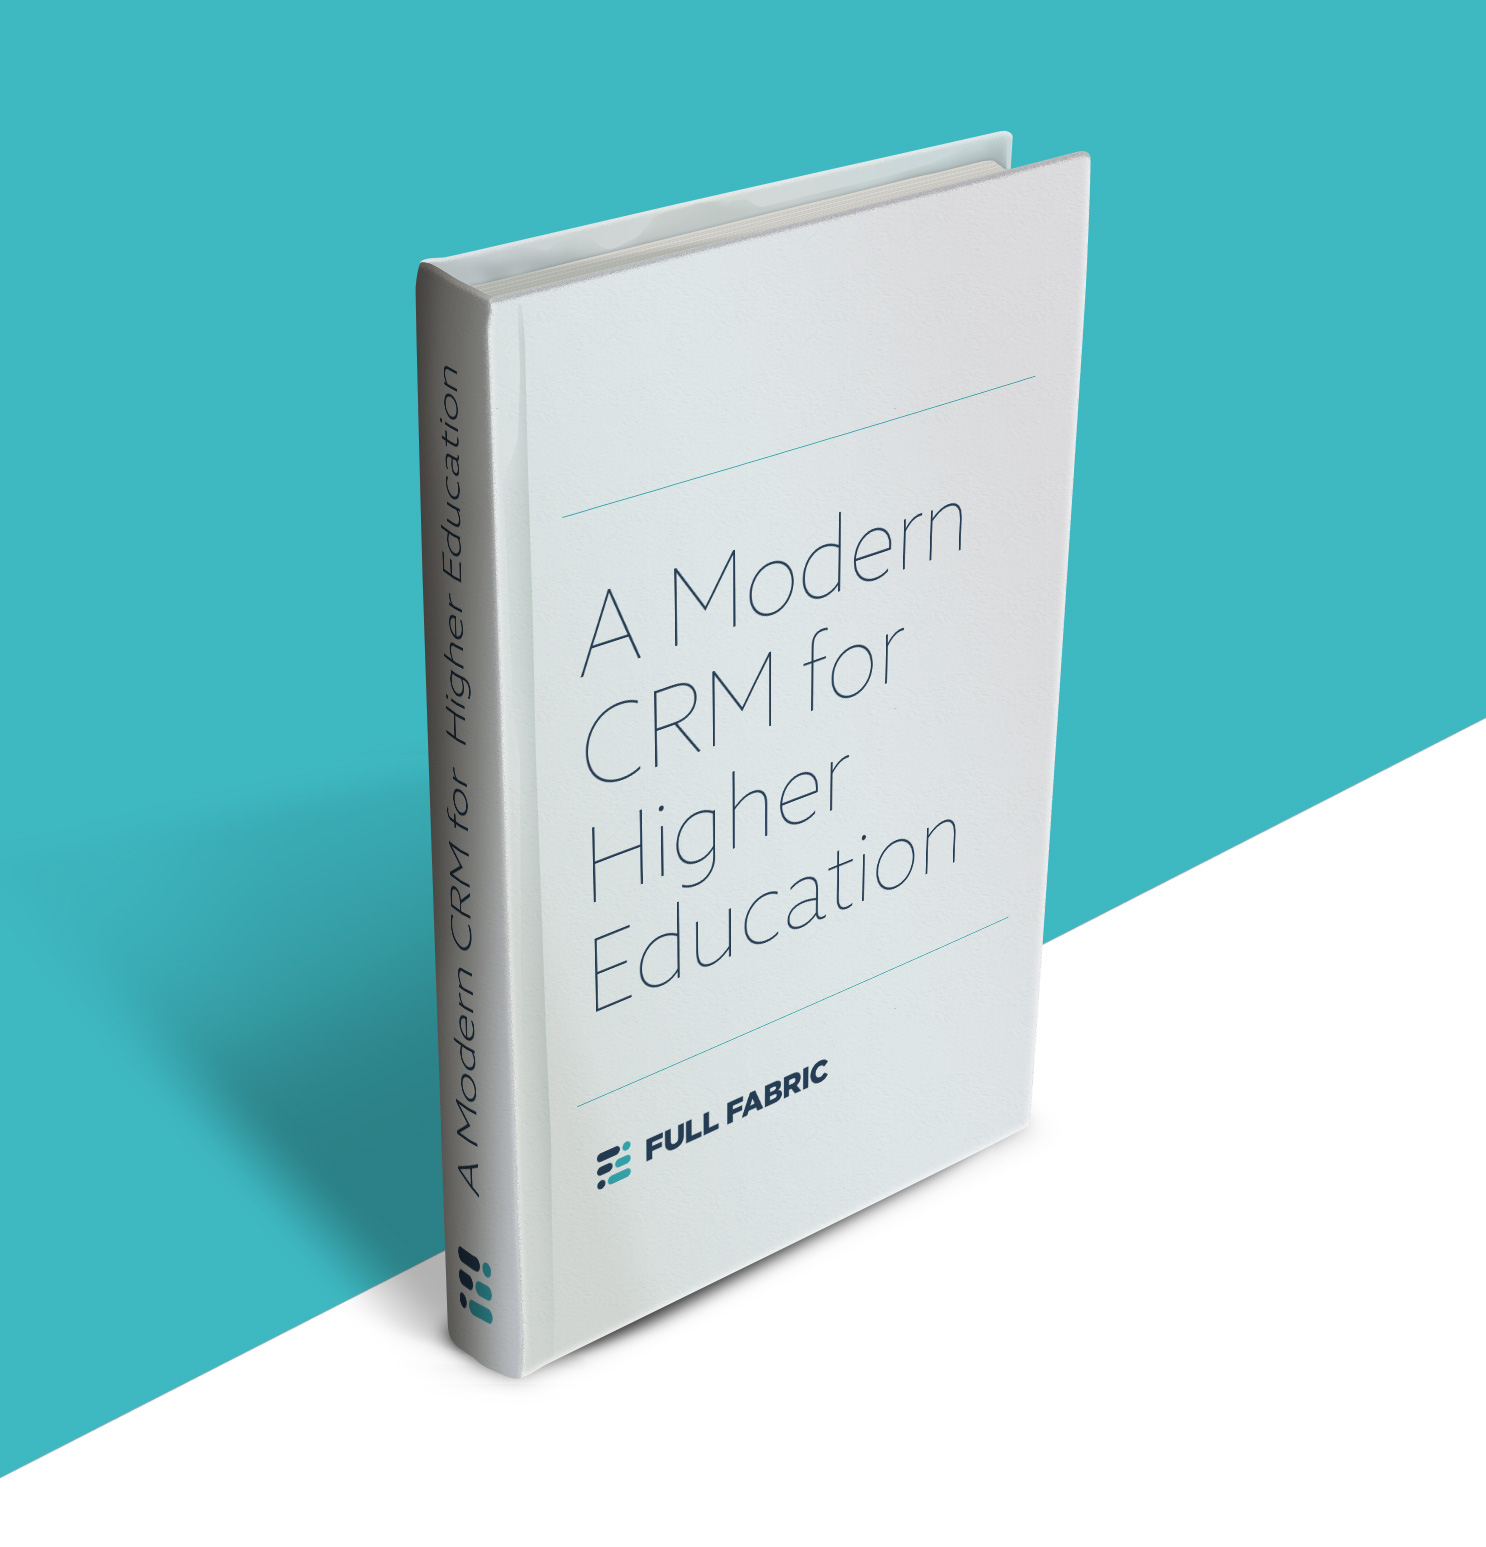 Five ways a modern CRM can help your university